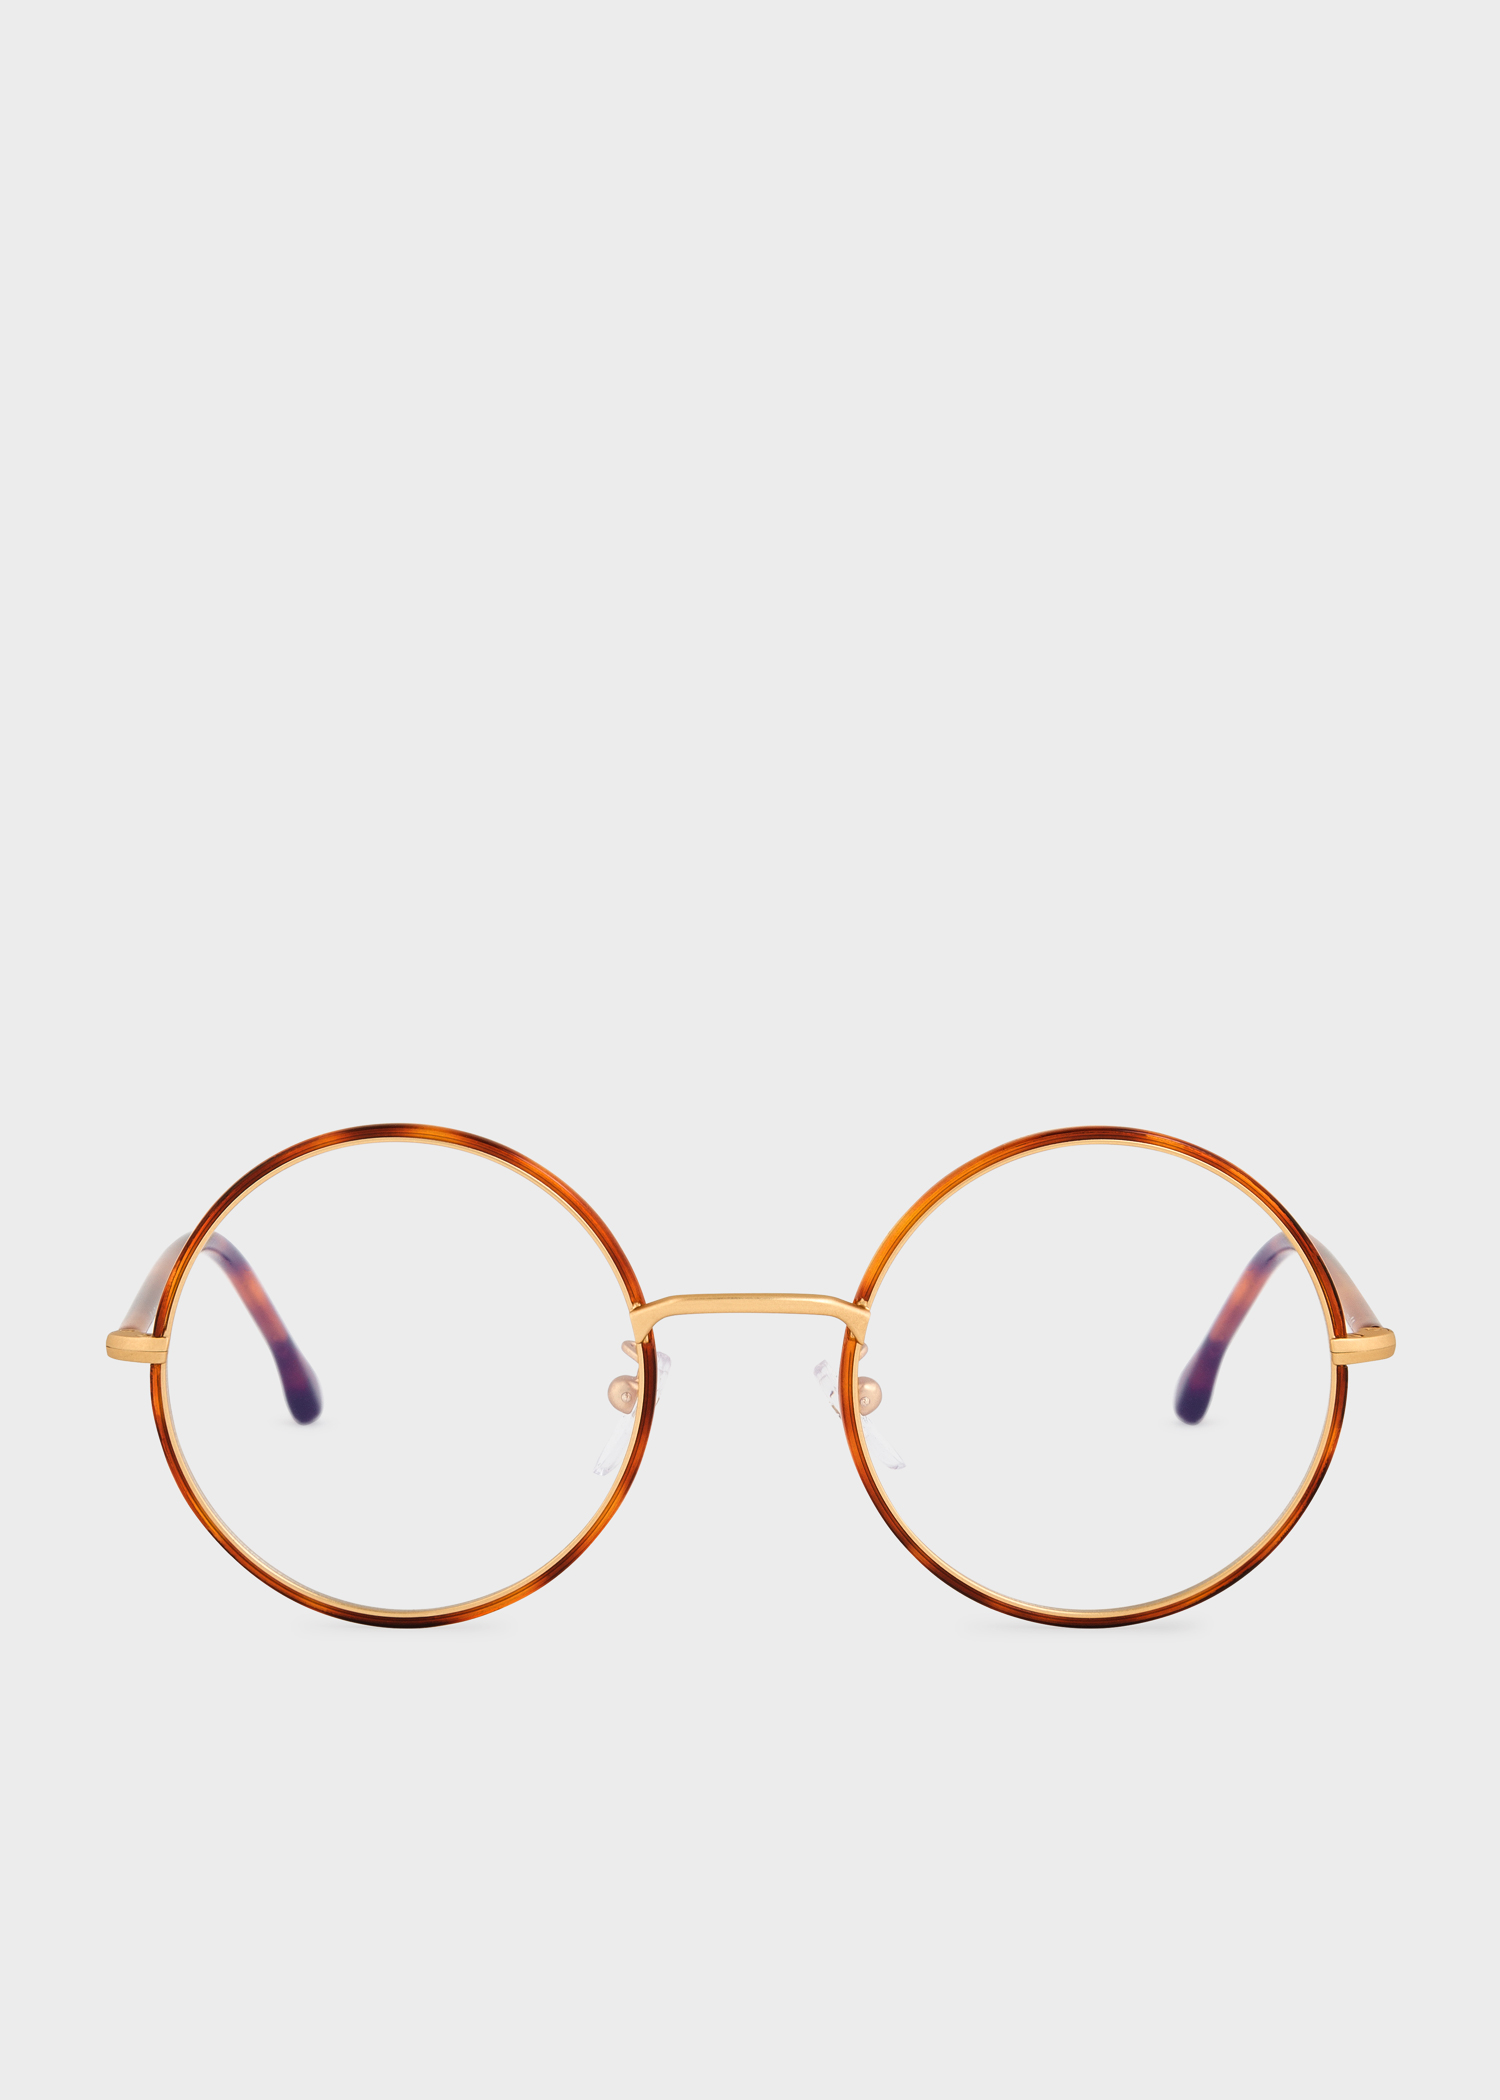 07f8c9765 Paul Smith Honey Turtle And Gold 'Alford' Spectacles - Paul Smith US